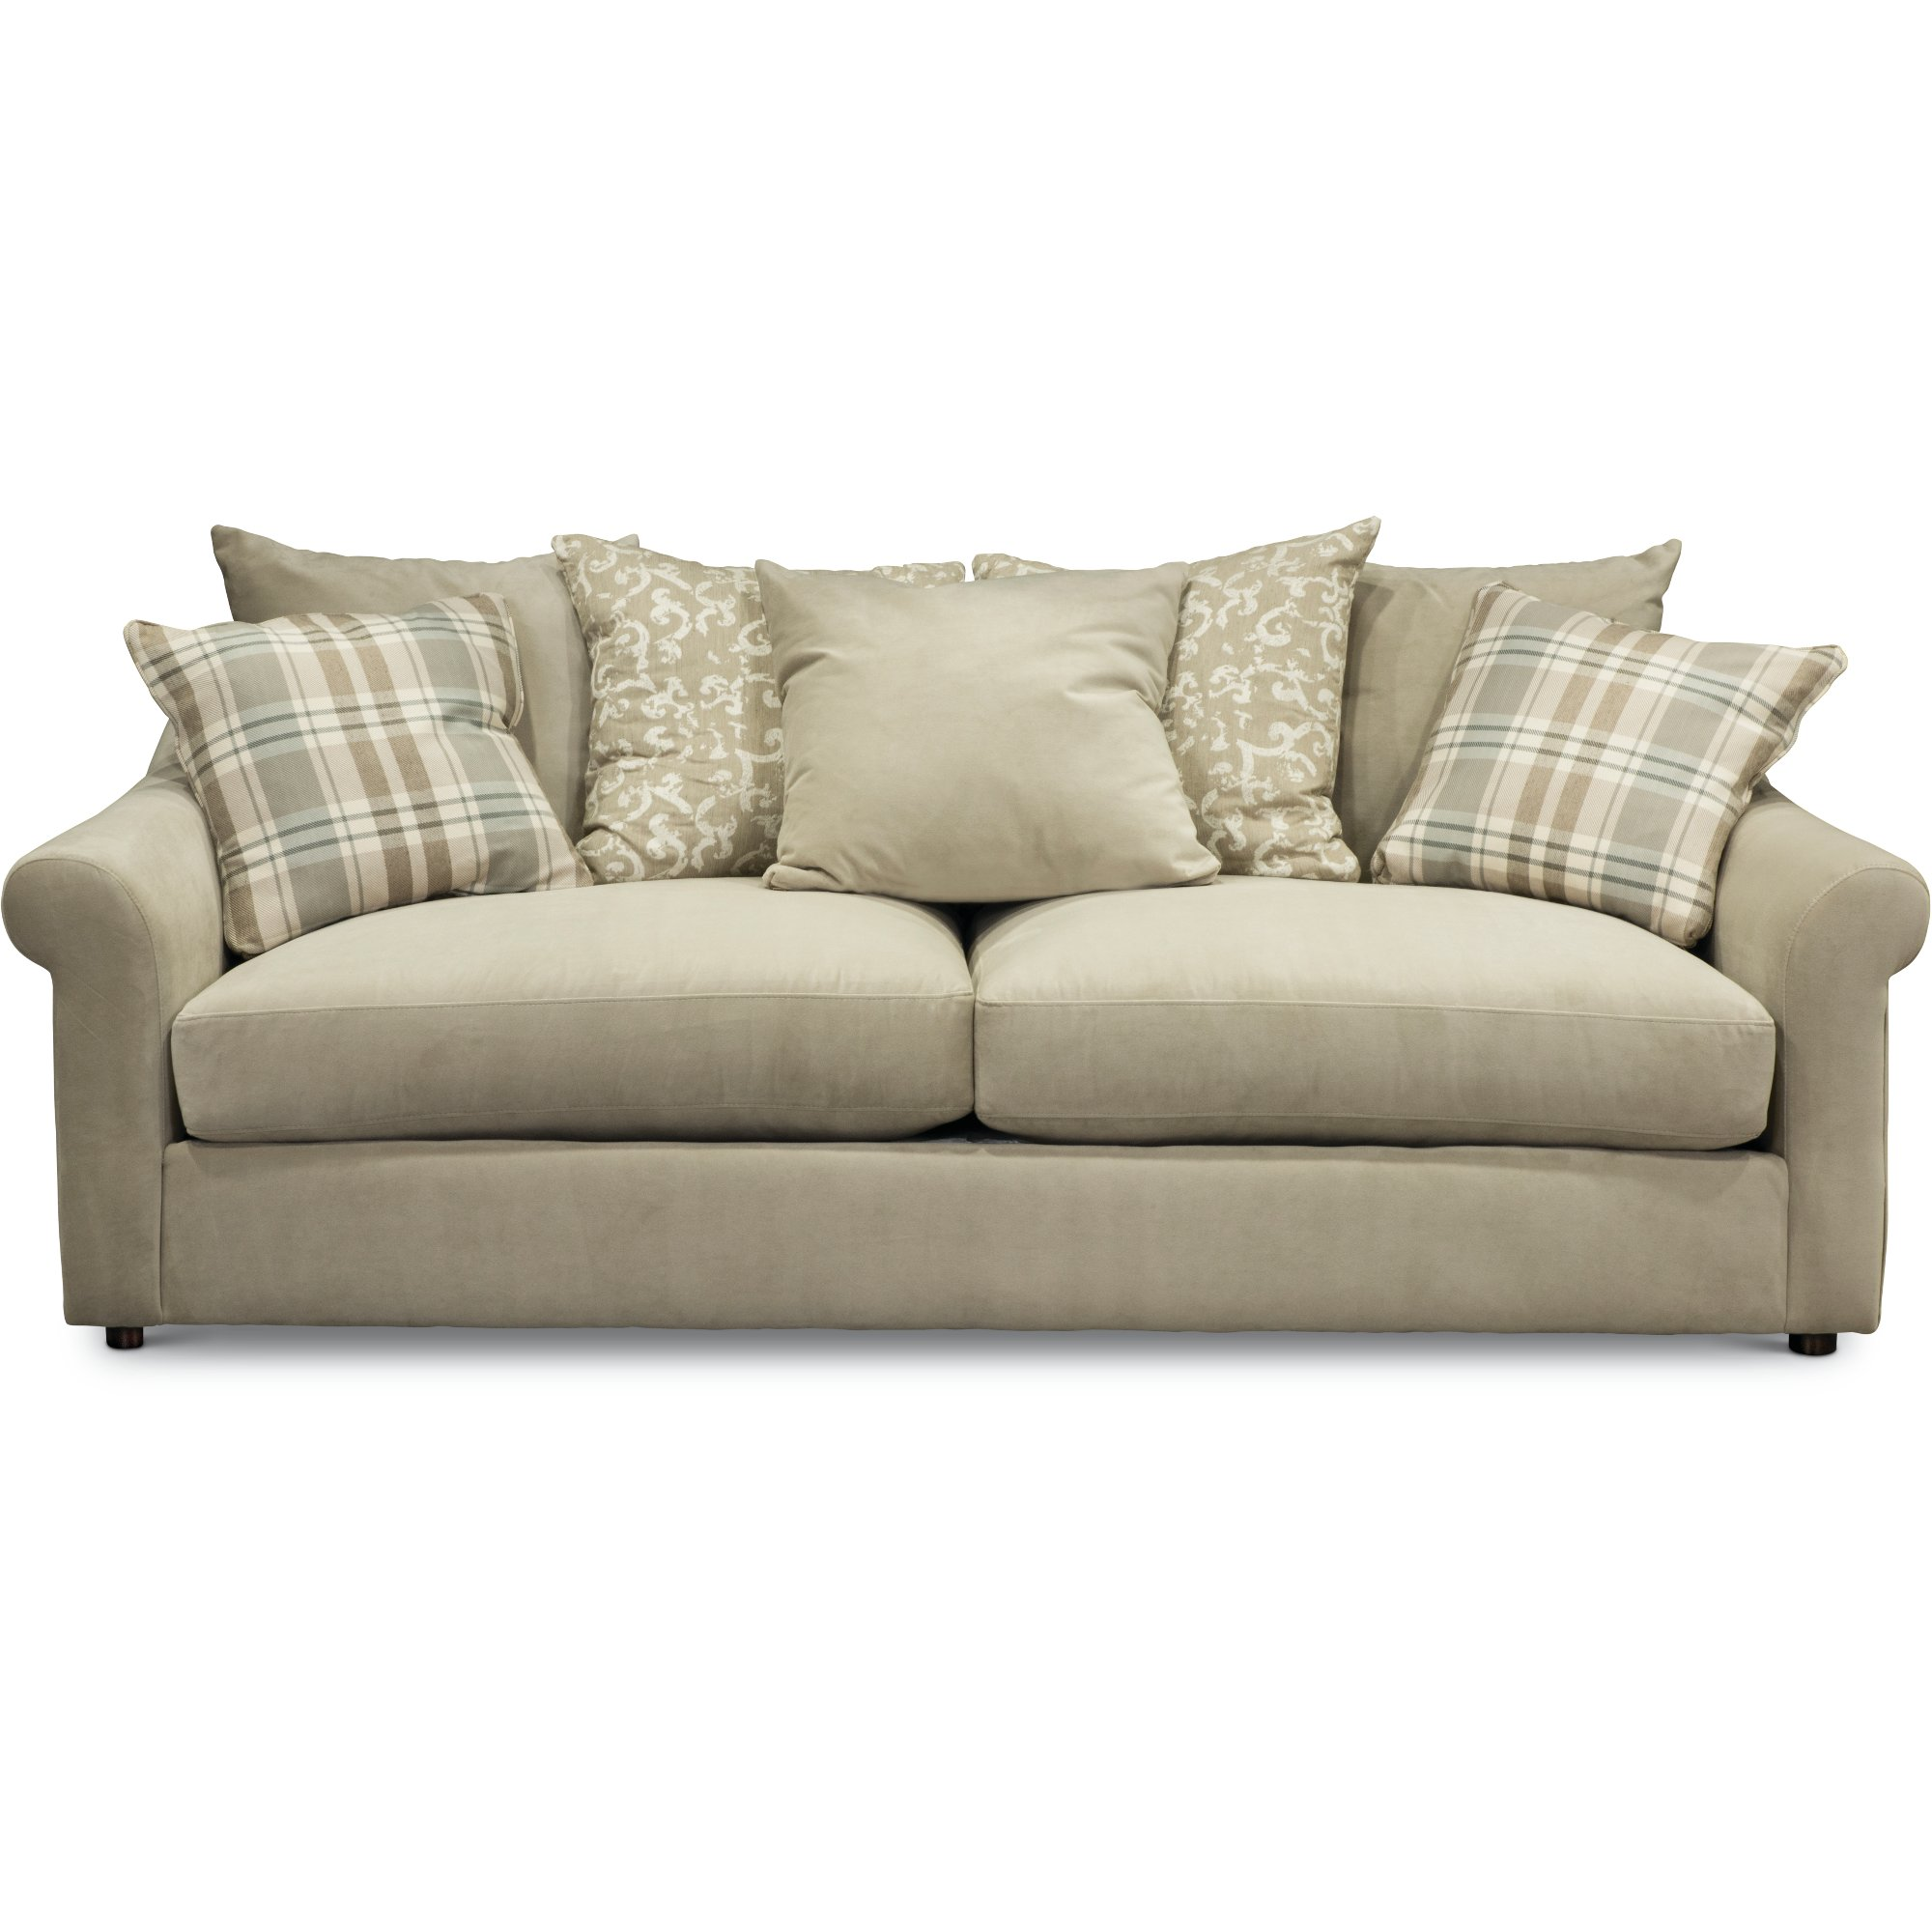 ... Casual Traditional Oyster Cream Sofa - Gavin ...  sc 1 st  RC Willey : bauhaus sectional couch - Sectionals, Sofas & Couches